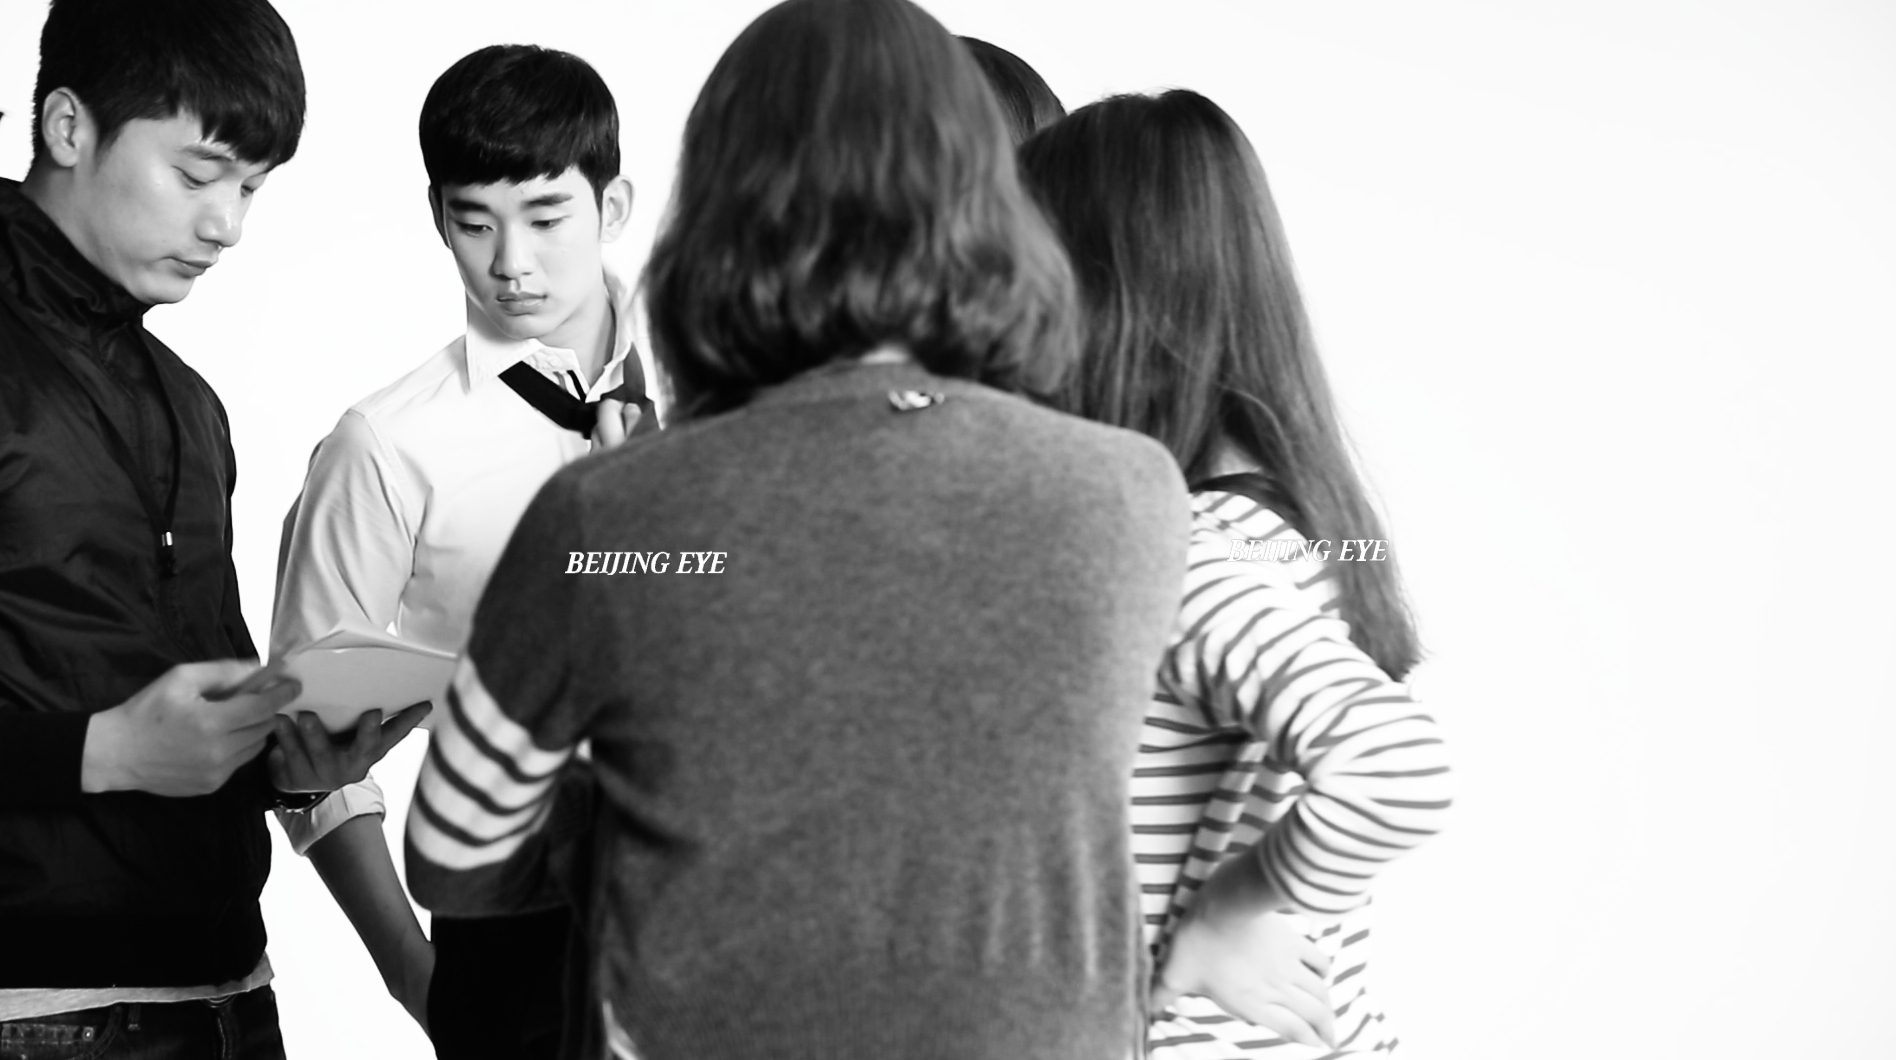 beijing-eye-produciton-yili-milk-korea-kim-soo-hyun-making-of 2